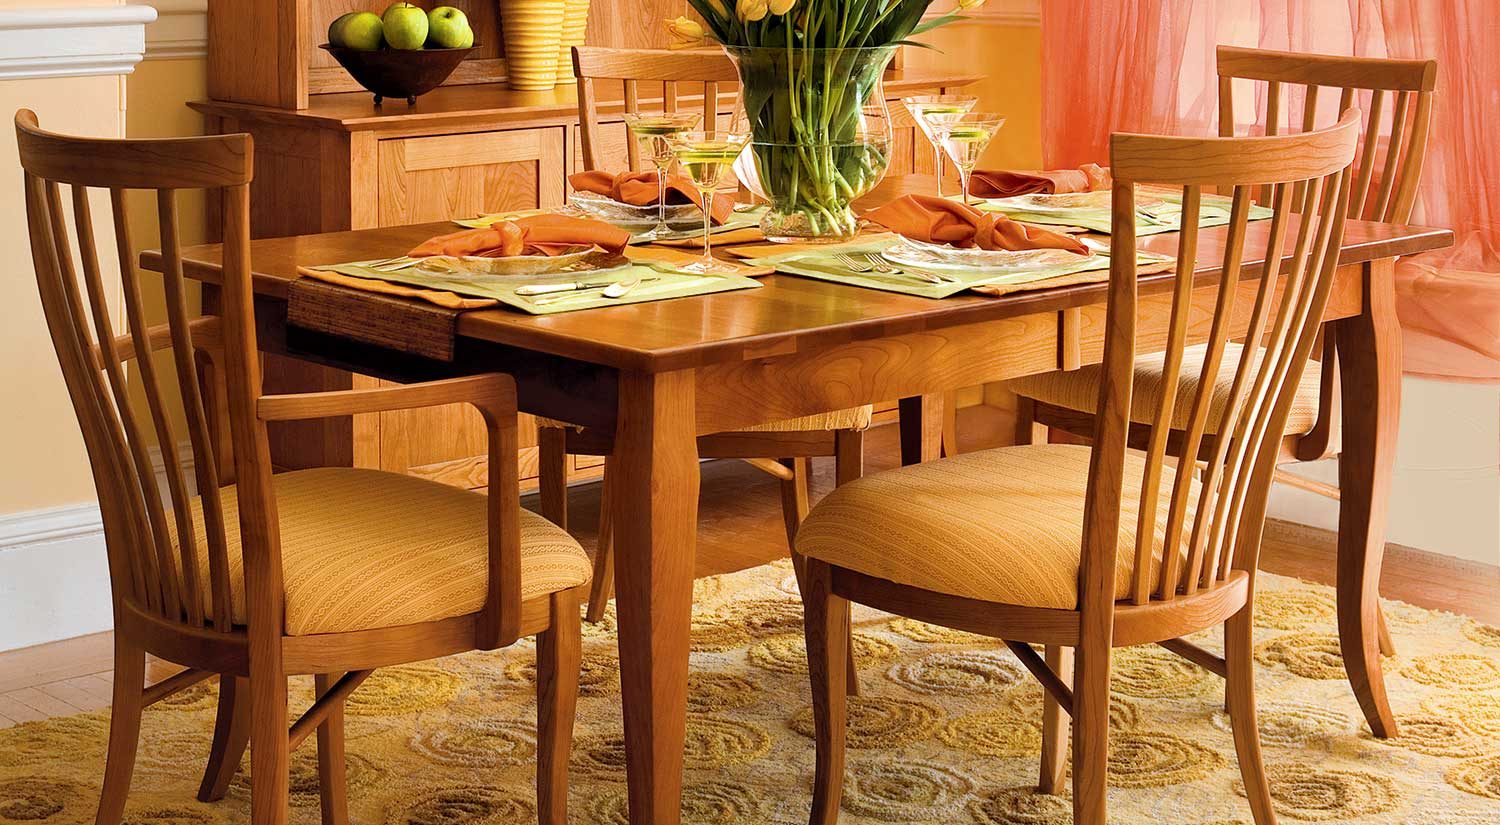 Amazoncom Farmhouse  Tables  Kitchen amp Dining Room